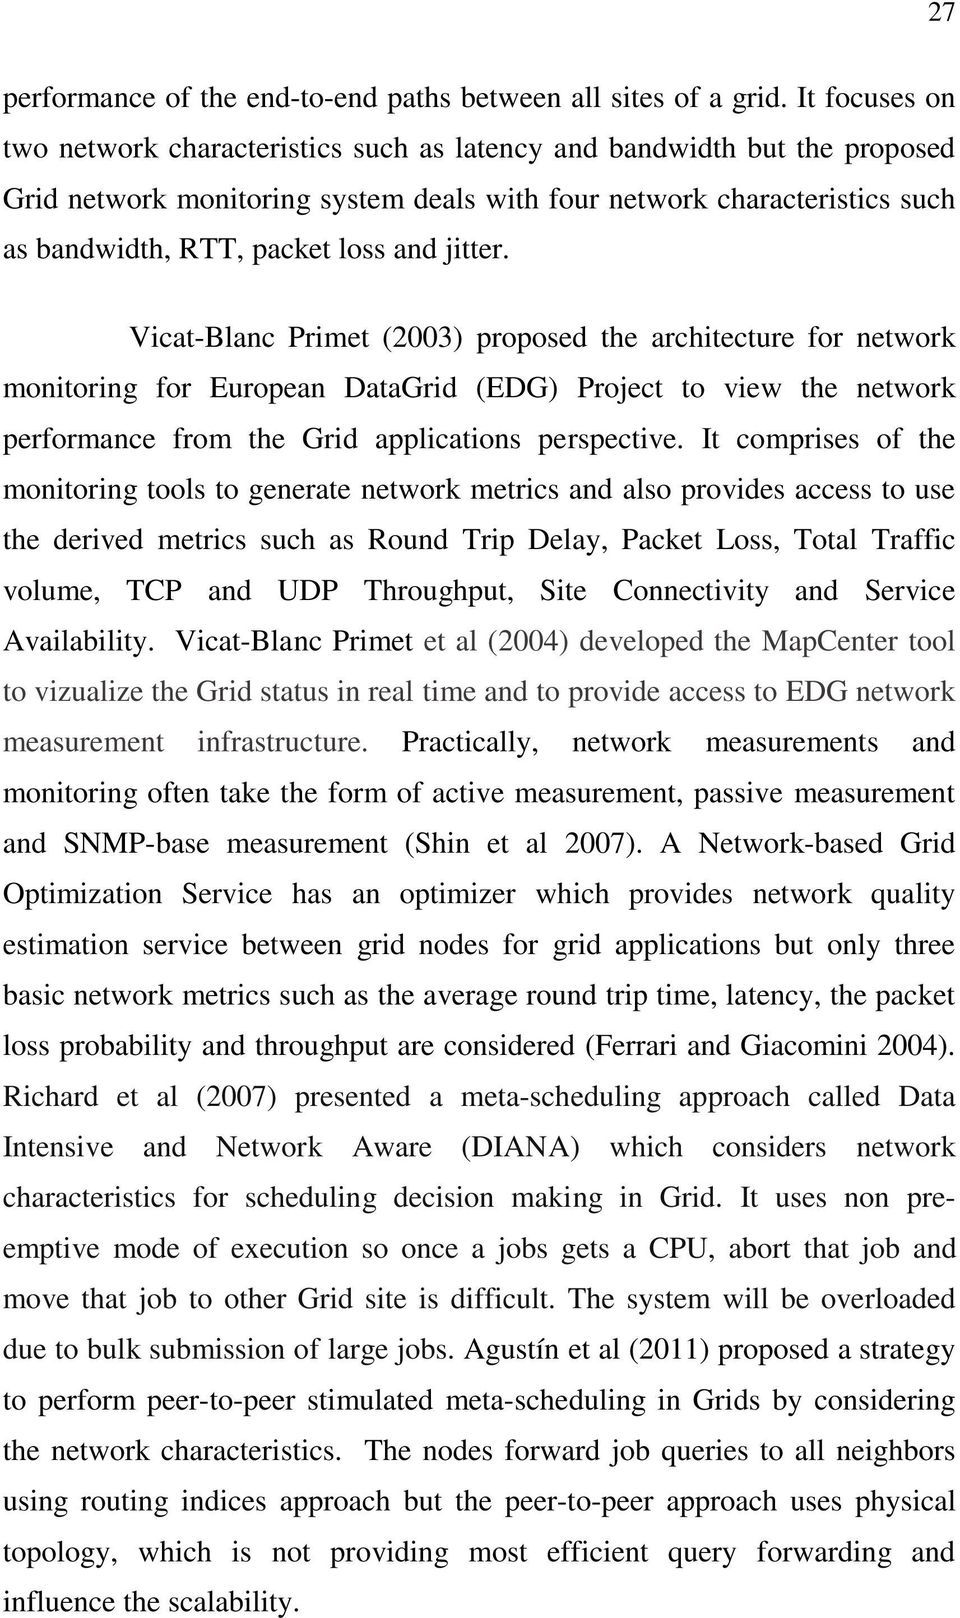 jitter. Vicat-Blanc Primet (2003) proposed the architecture for network monitoring for European DataGrid (EDG) Project to view the network performance from the Grid applications perspective.